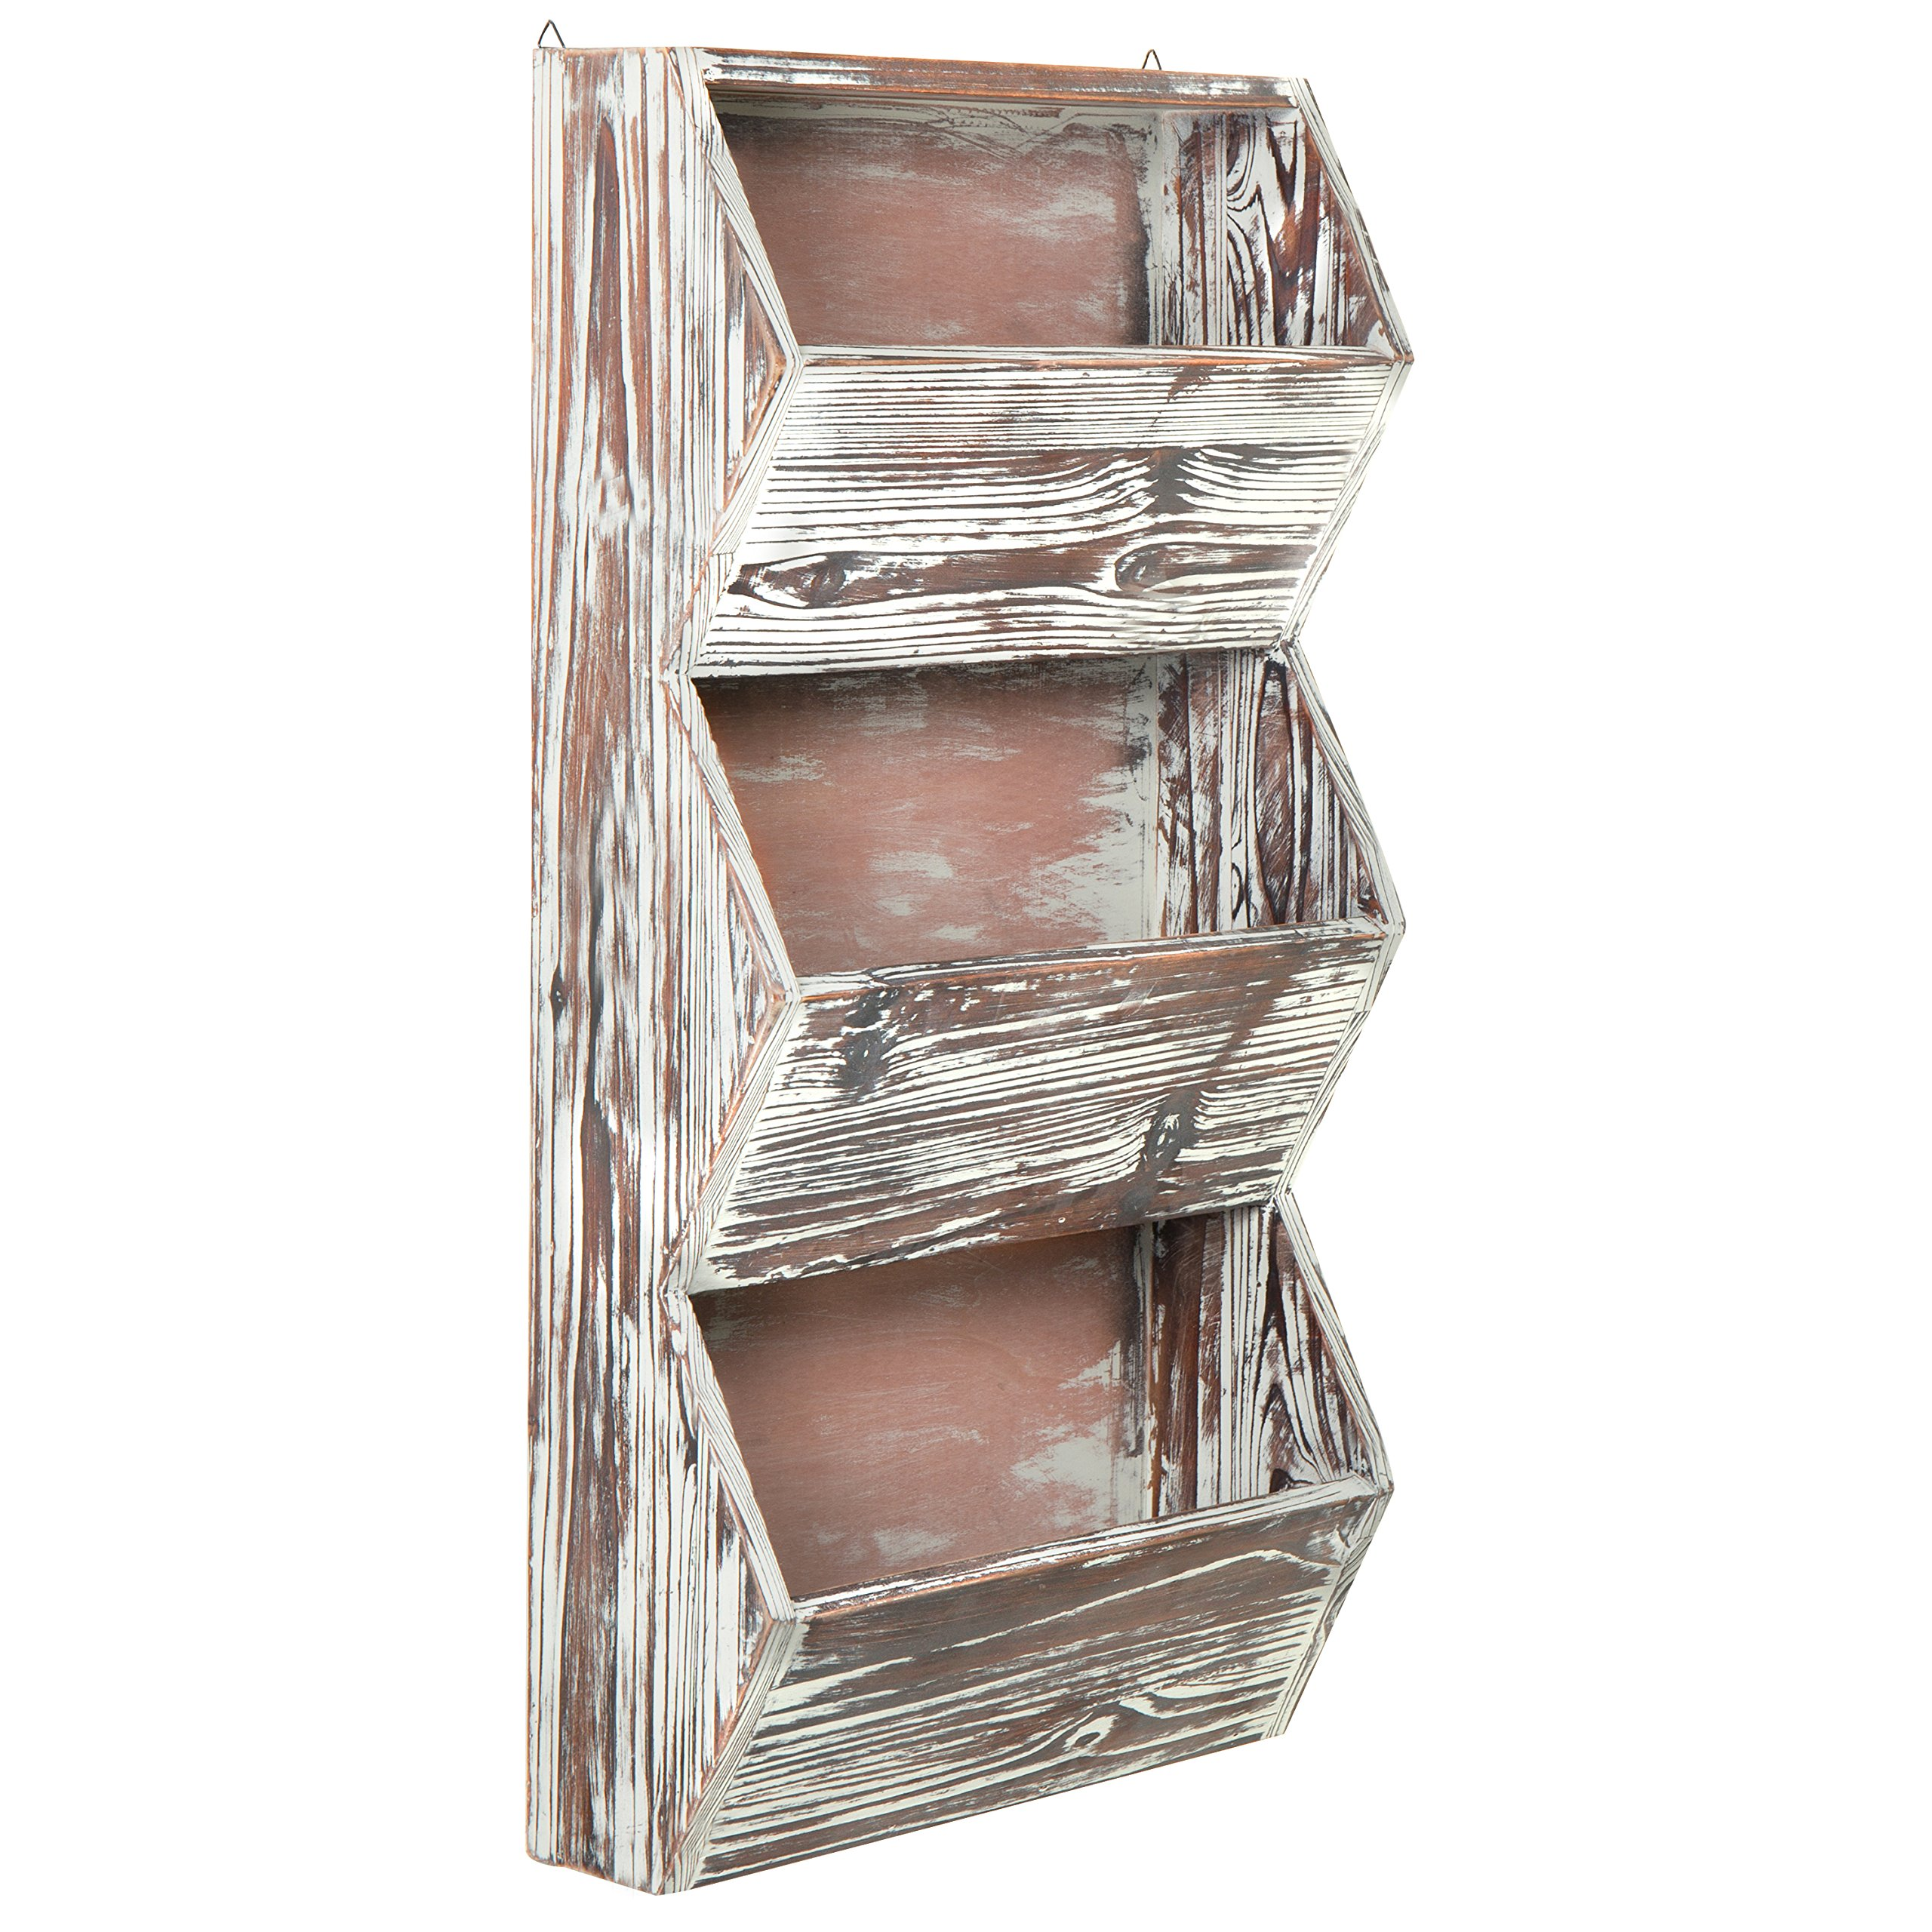 3 Tier 30 inches Rustic Torched Wood Wall Mounted Storage Organizer Rack, Hanging Multipurpose Open Bins